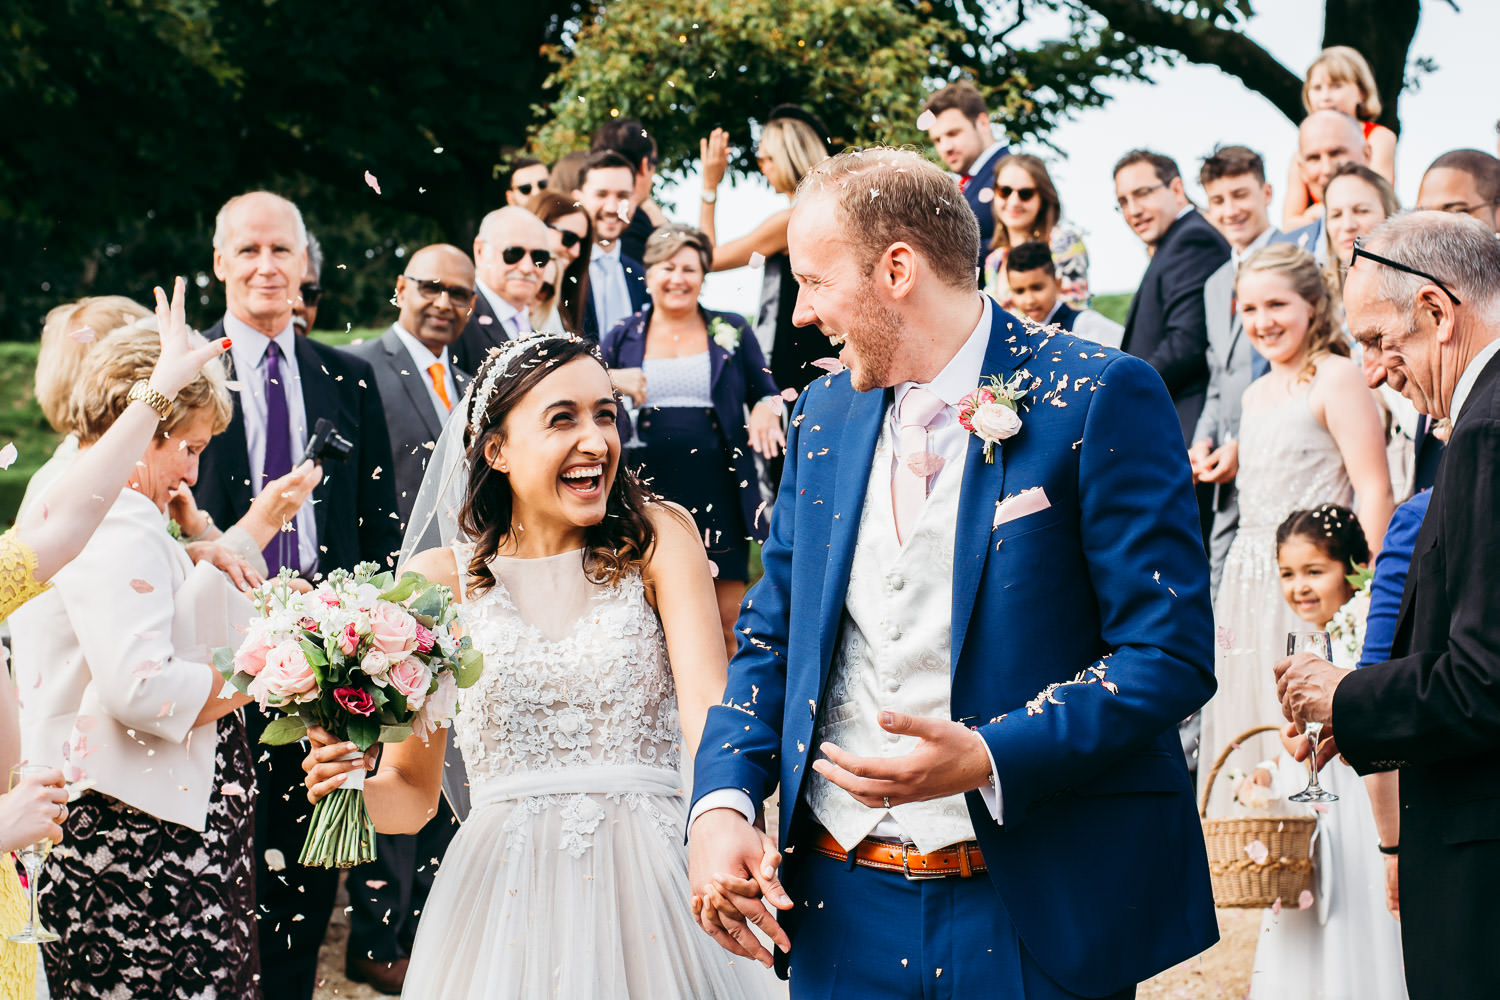 pendrell-hall-relaxed-fun-summer-wedding-the-distractions-band-4.jpg